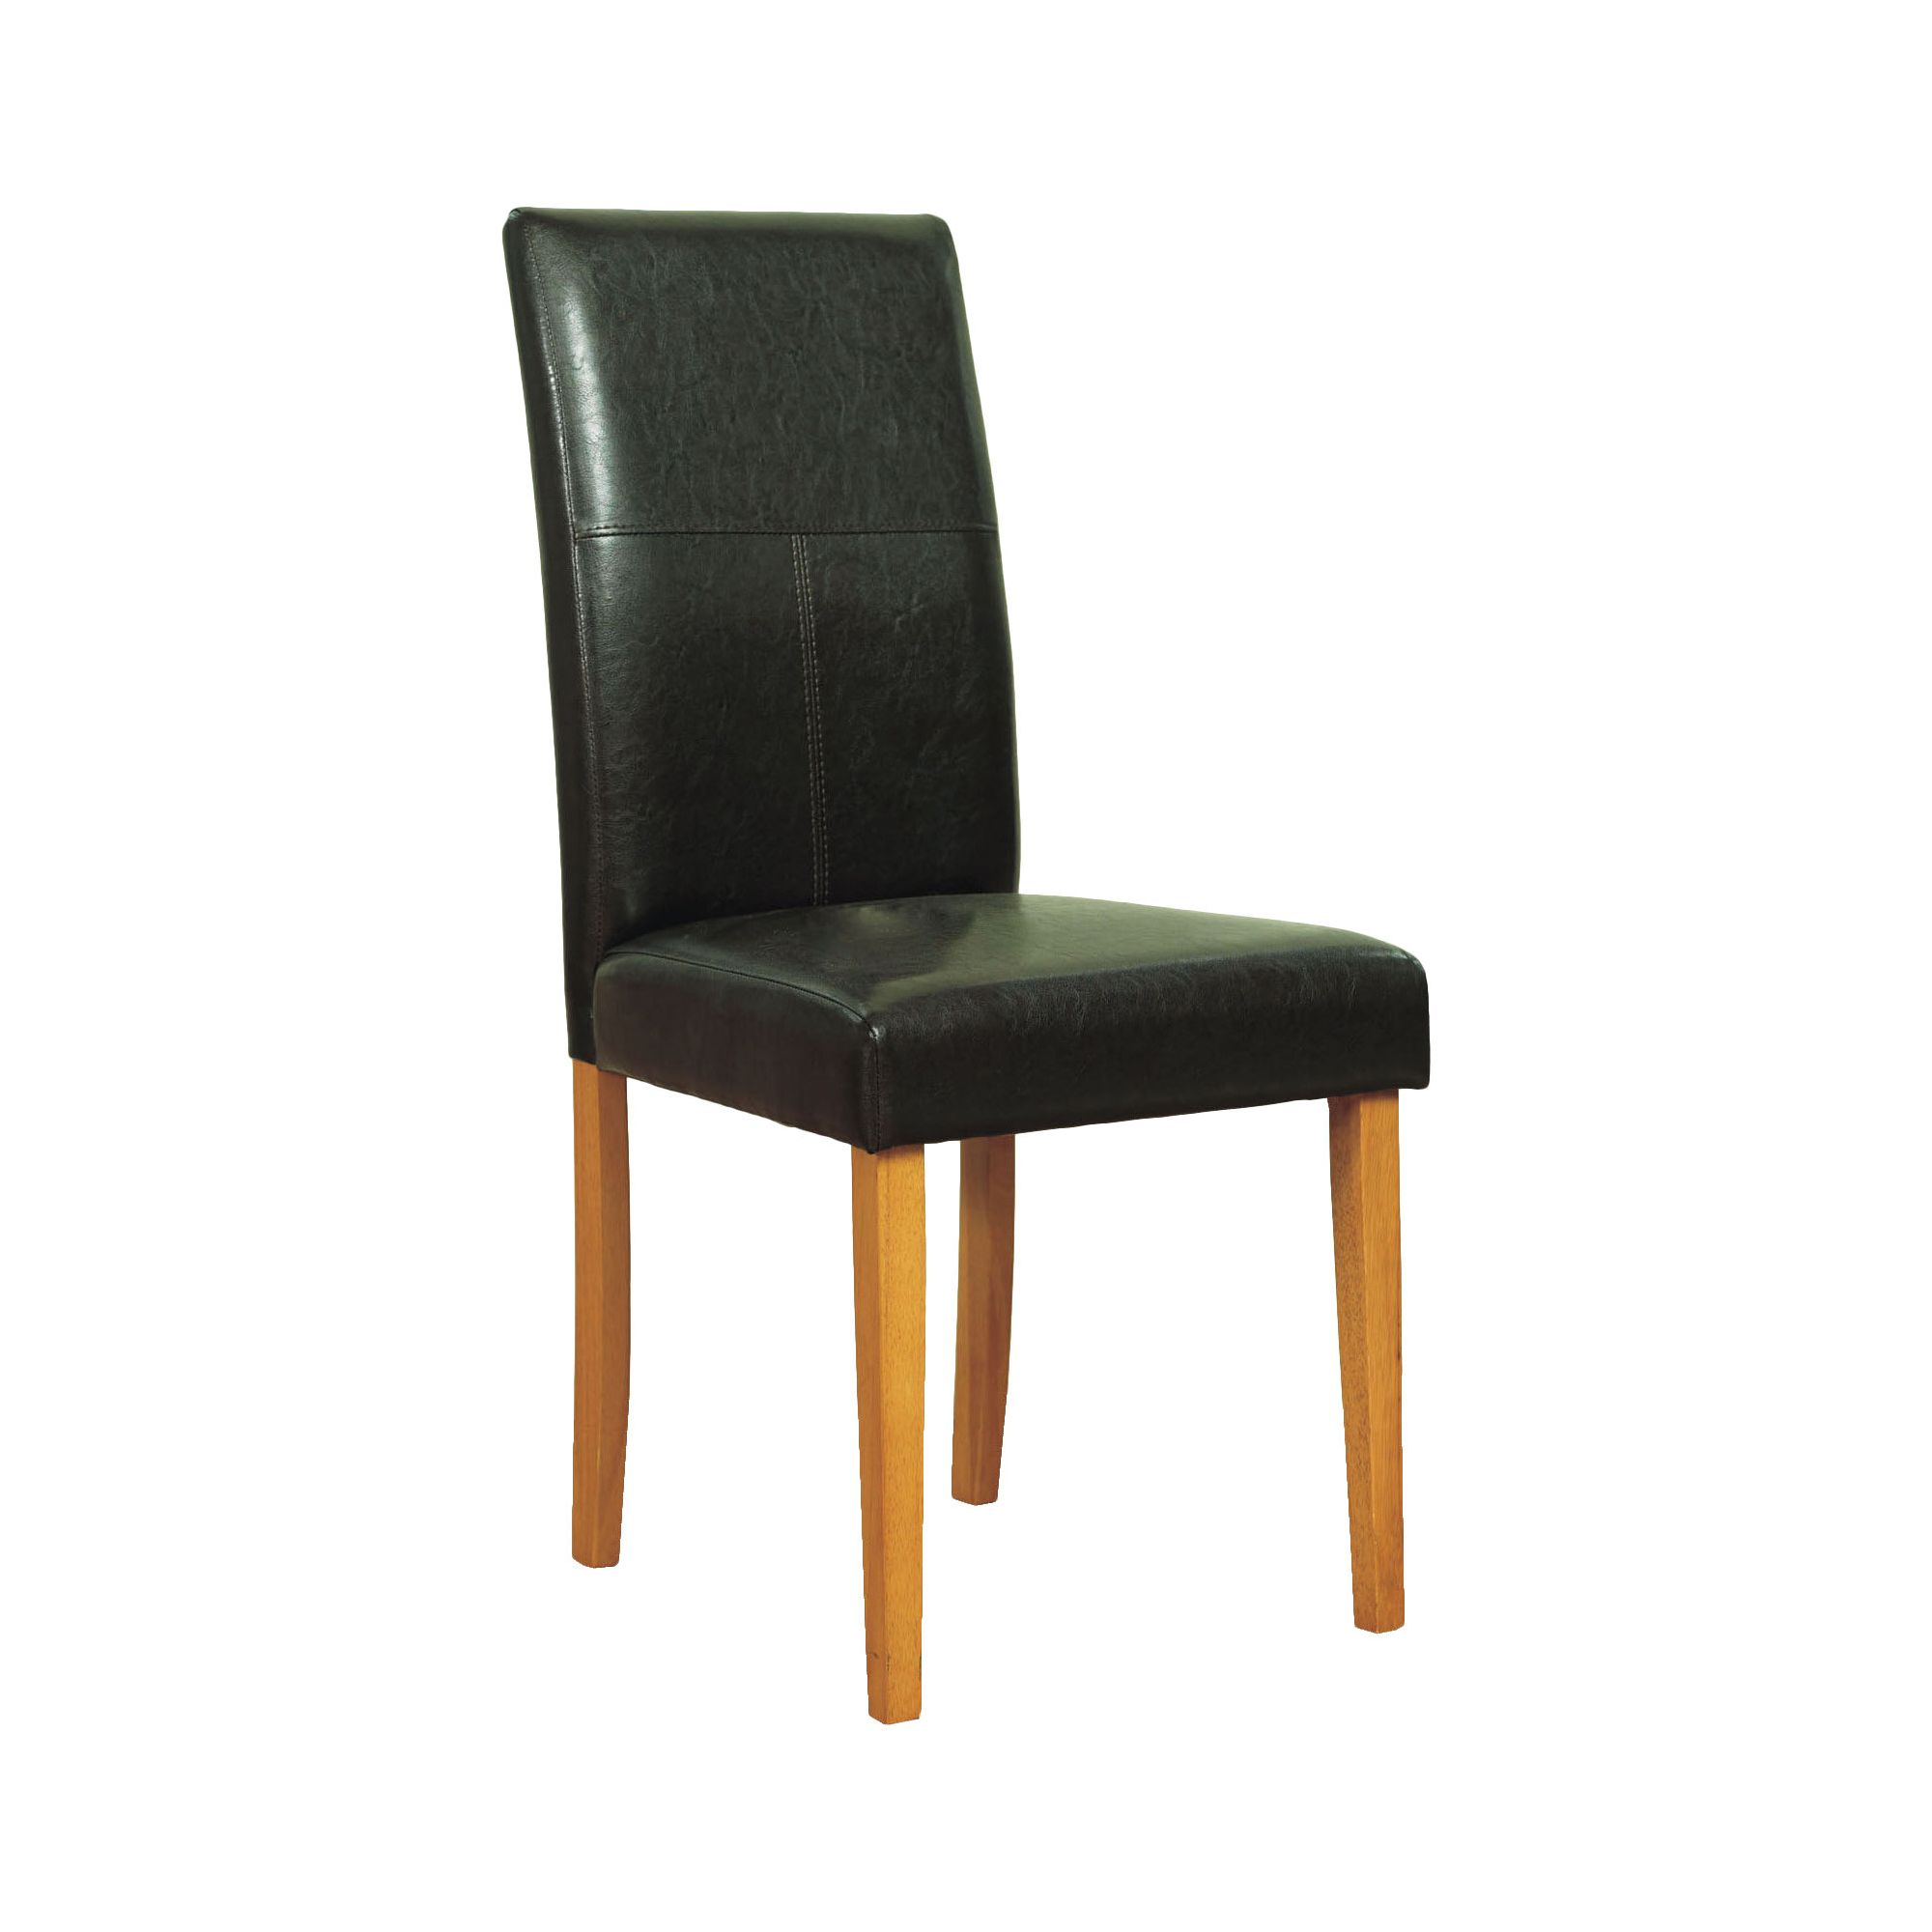 Furniture Link Adler Dining Chair with Oak Legs in Brown (Set of 2)